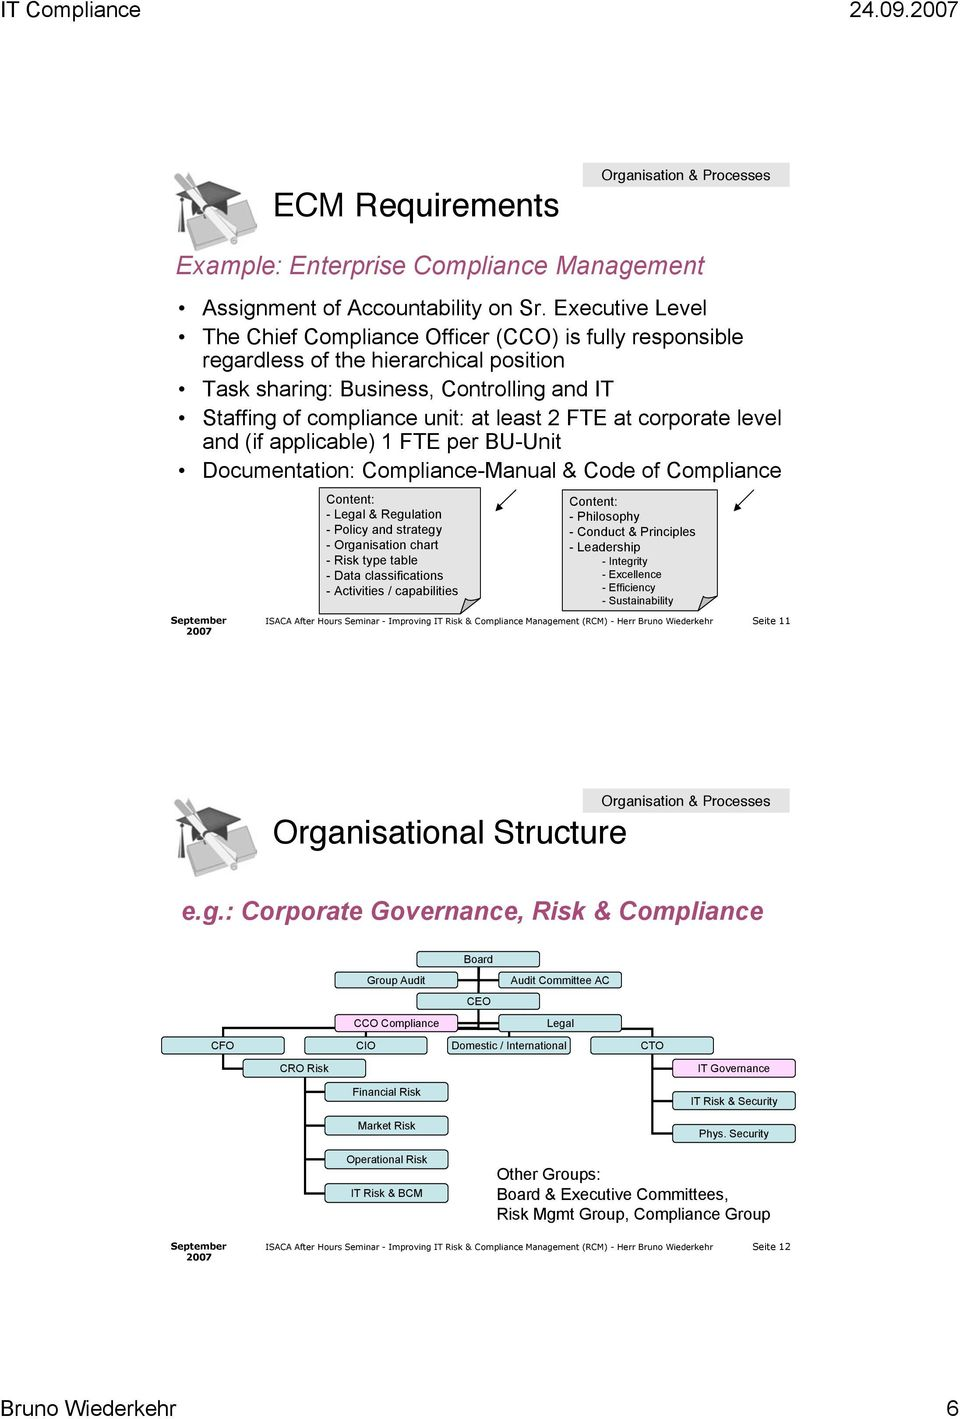 at corporate level and (if applicable) 1 FTE per BU-Unit Documentation: Compliance-Manual & Code of Compliance Content: - Legal & Regulation - Policy and strategy - Organisation chart - Risk type